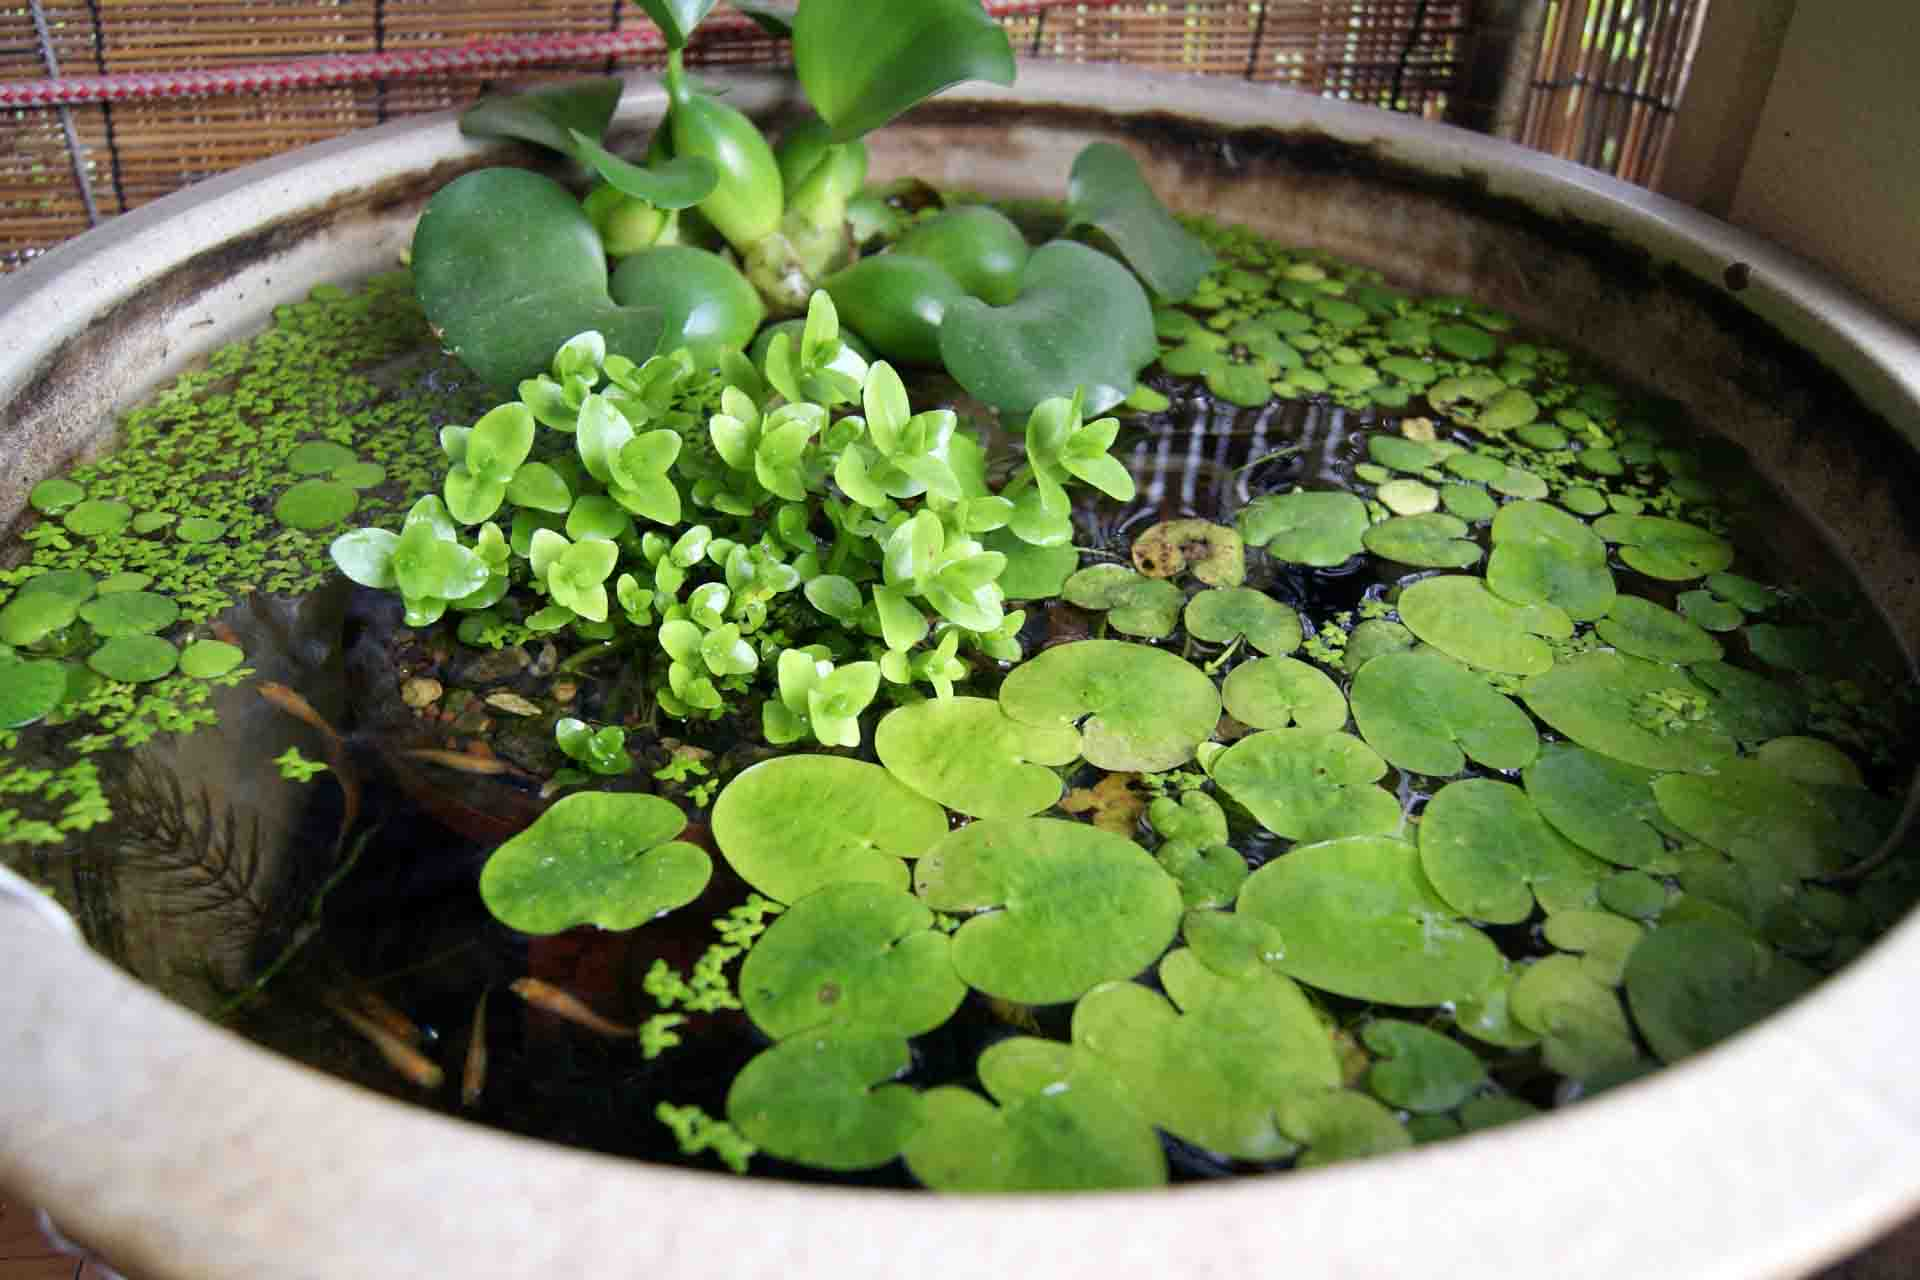 A nano pond with different pond plants.